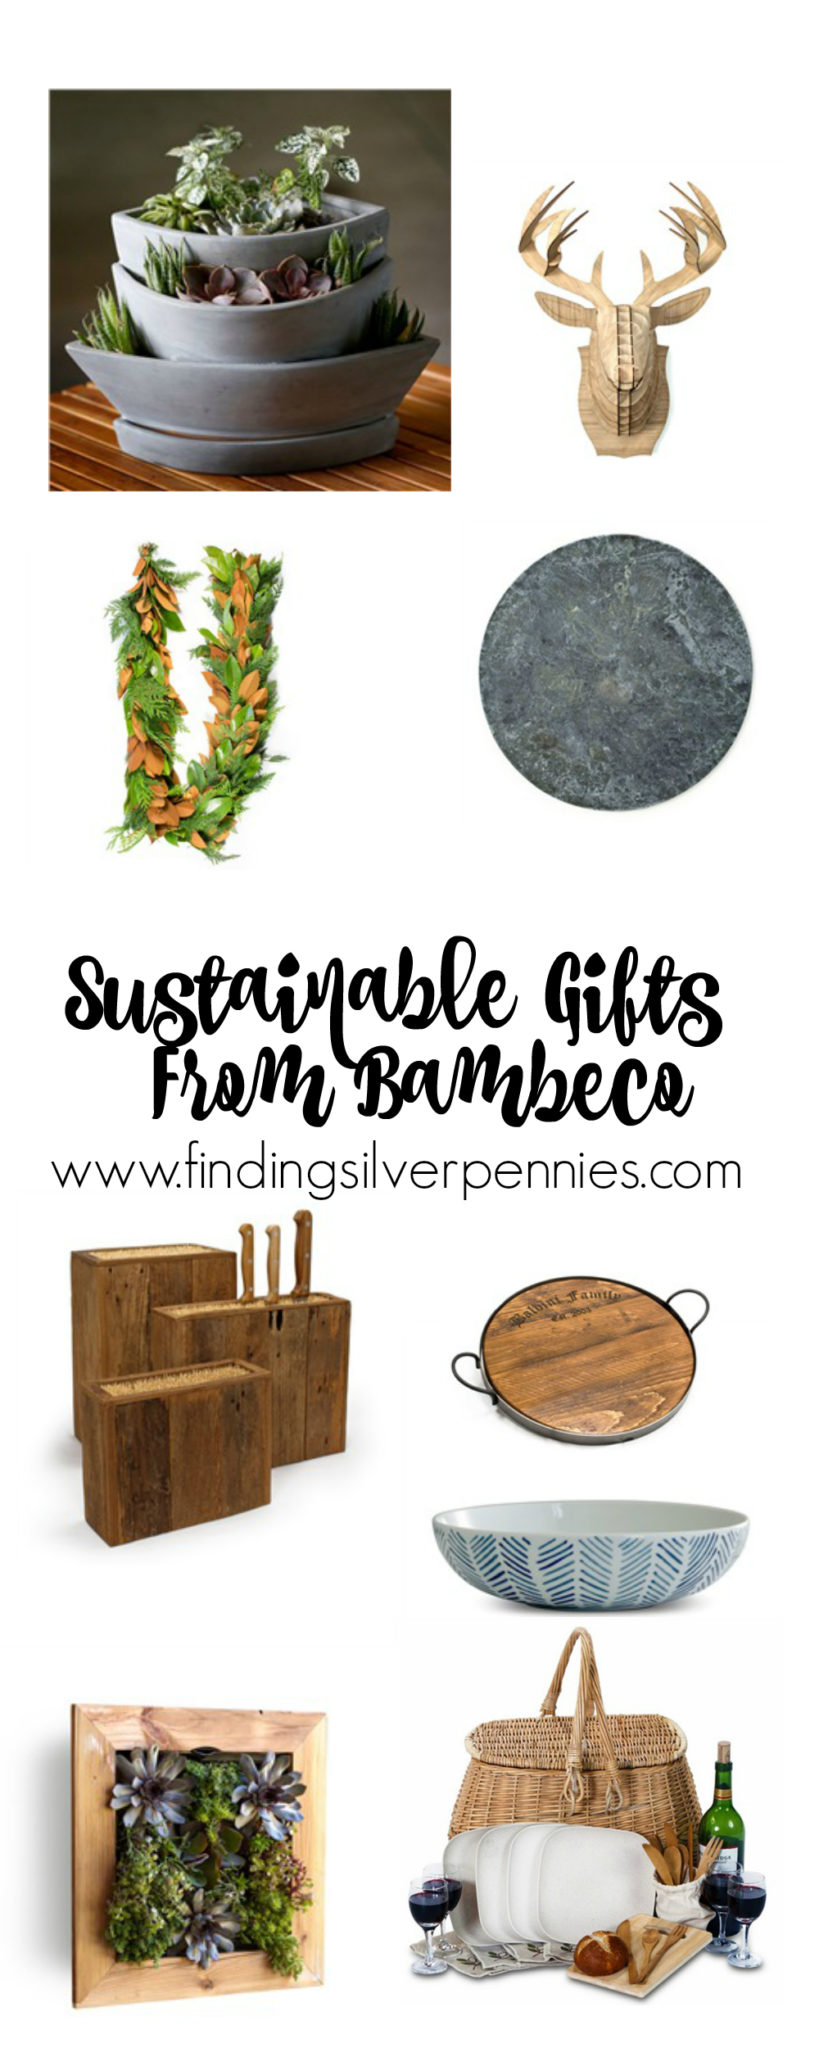 My Favorite Sustainable Gifts from Bambeco I Win a Bambeco Gift Card Giveaway